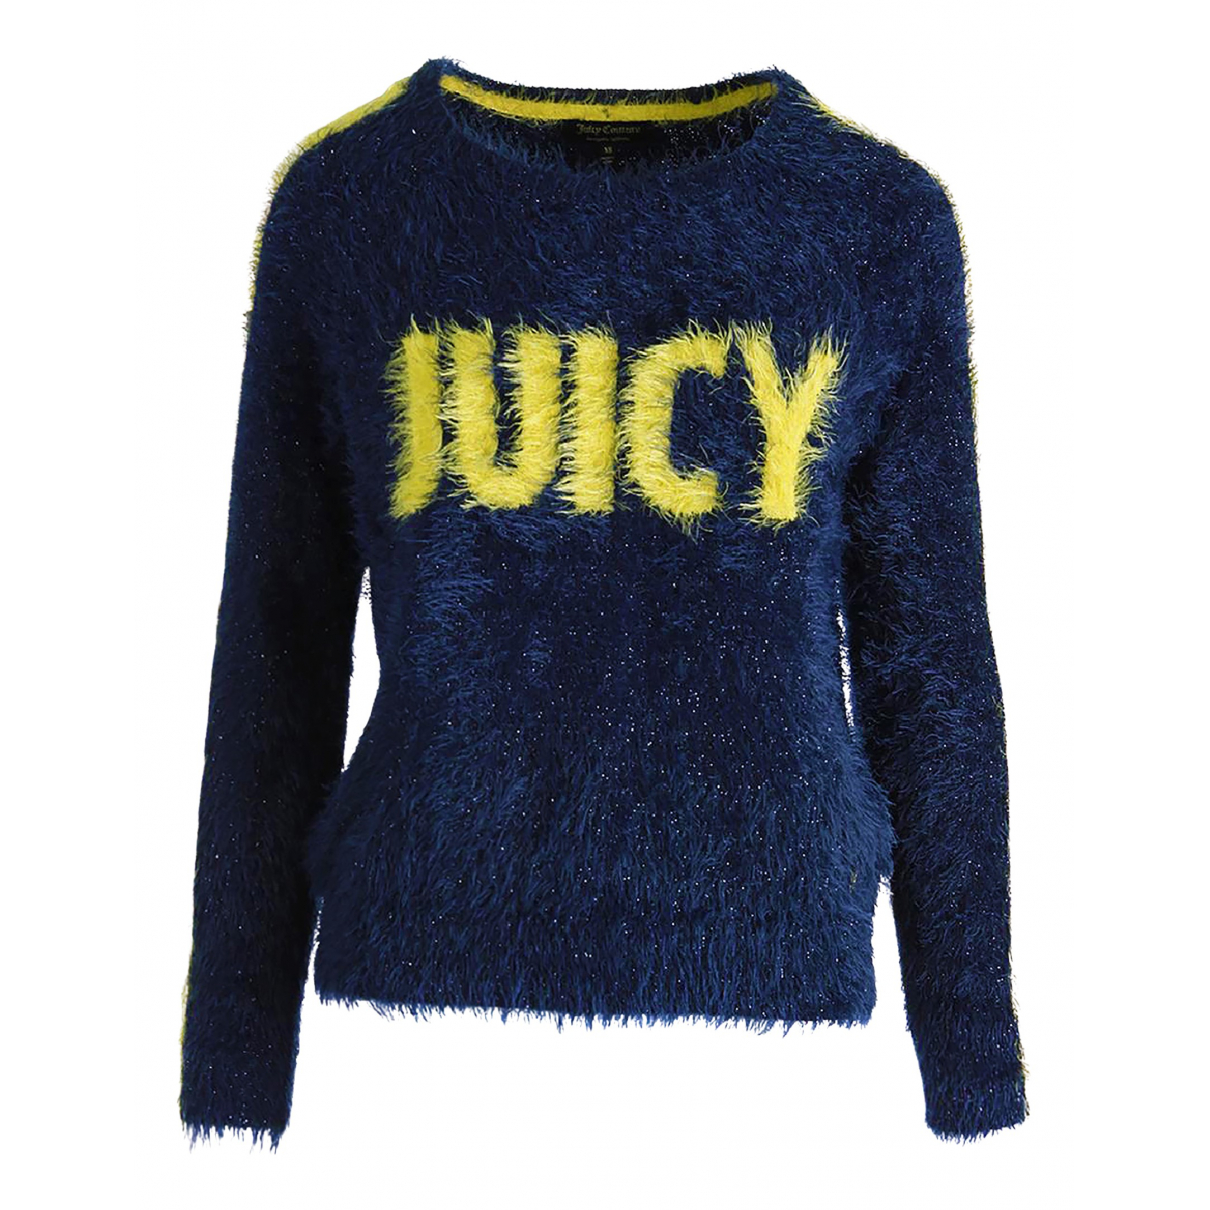 Juicy Couture \N Blue Knitwear for Women XS International